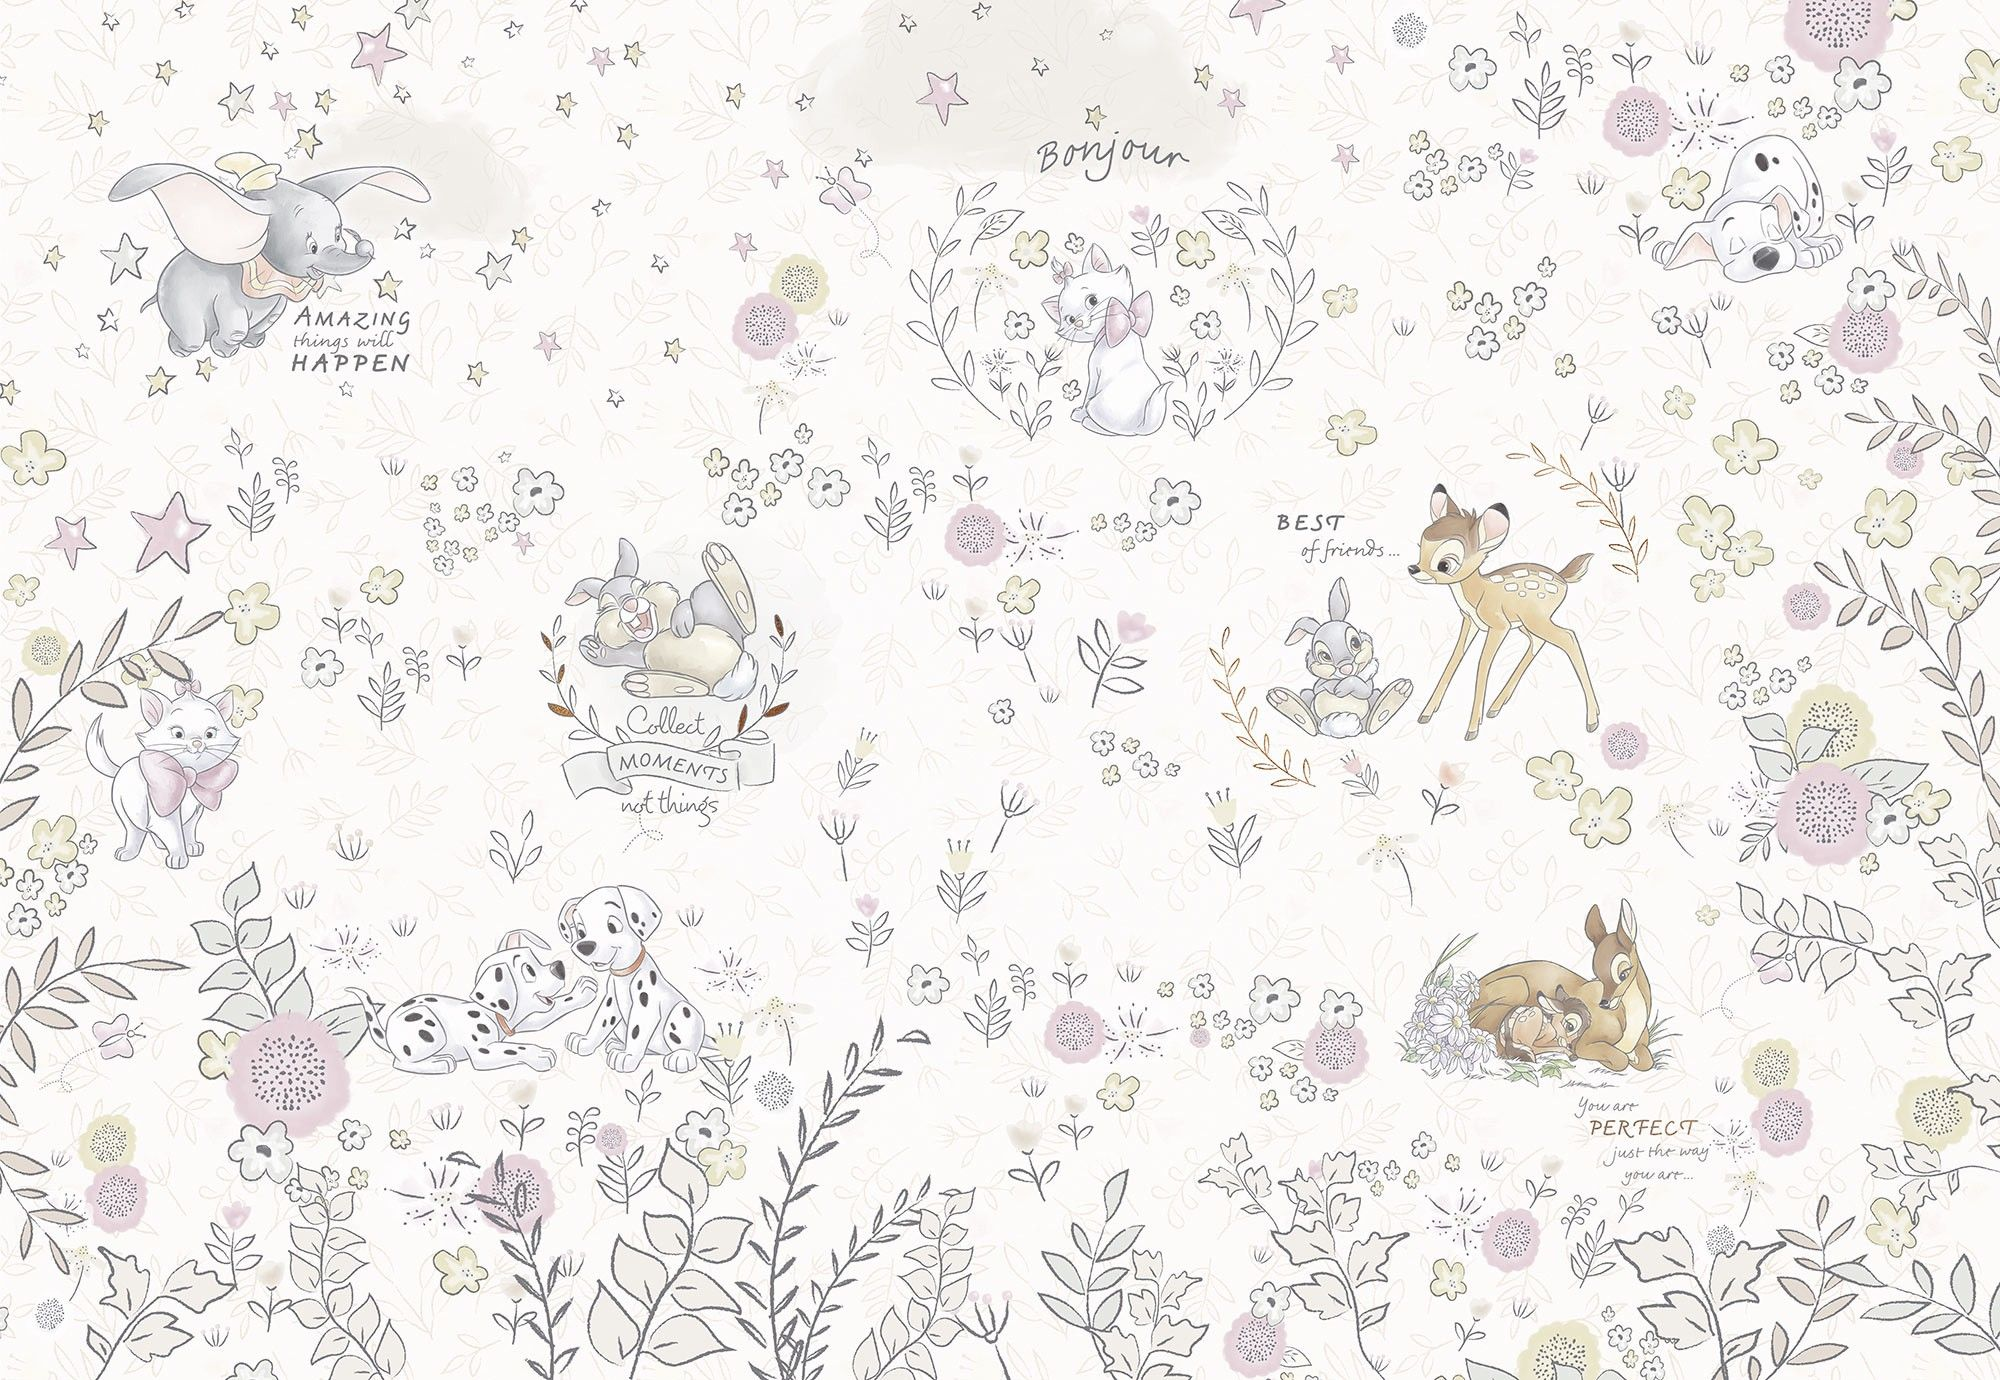 bambi \u0026 dumbo nursery wallpaper mural buy it now